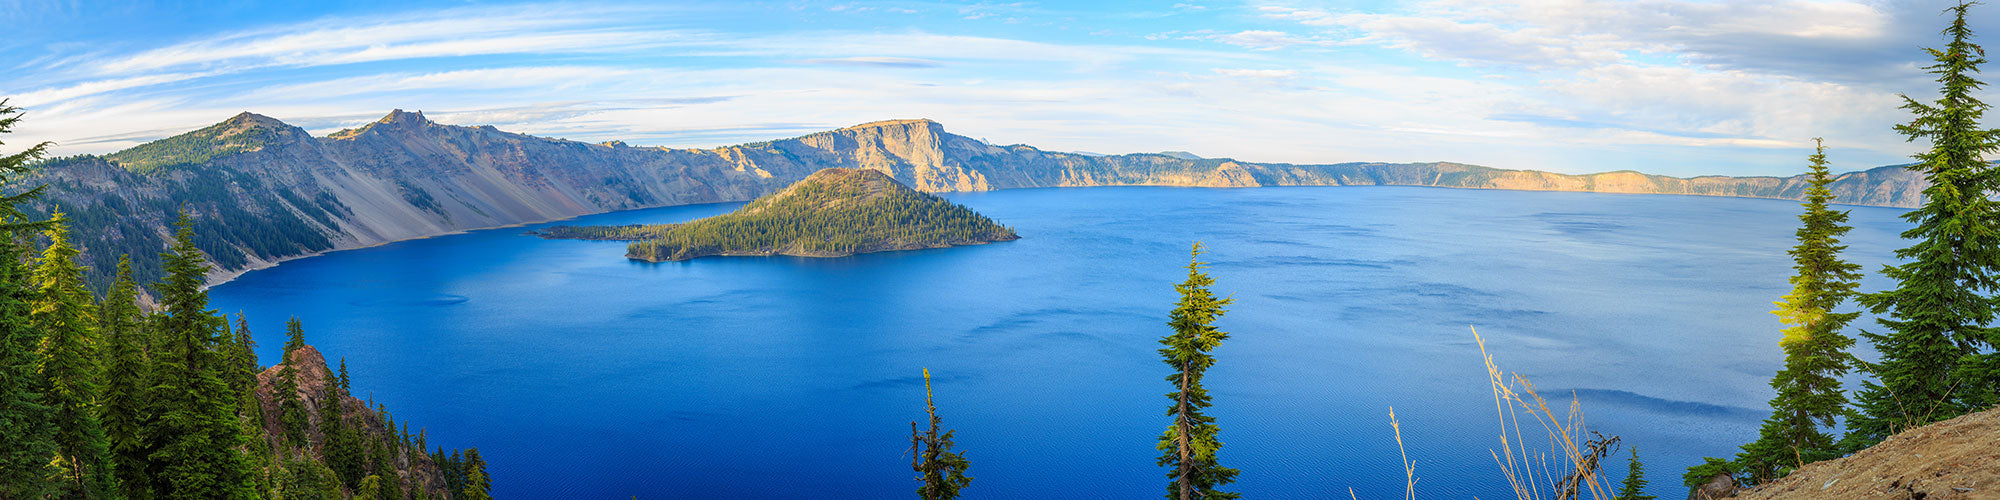 Fine Art Photography Prints of Crater Lake - Satellite Images of Earth - Point Two Design